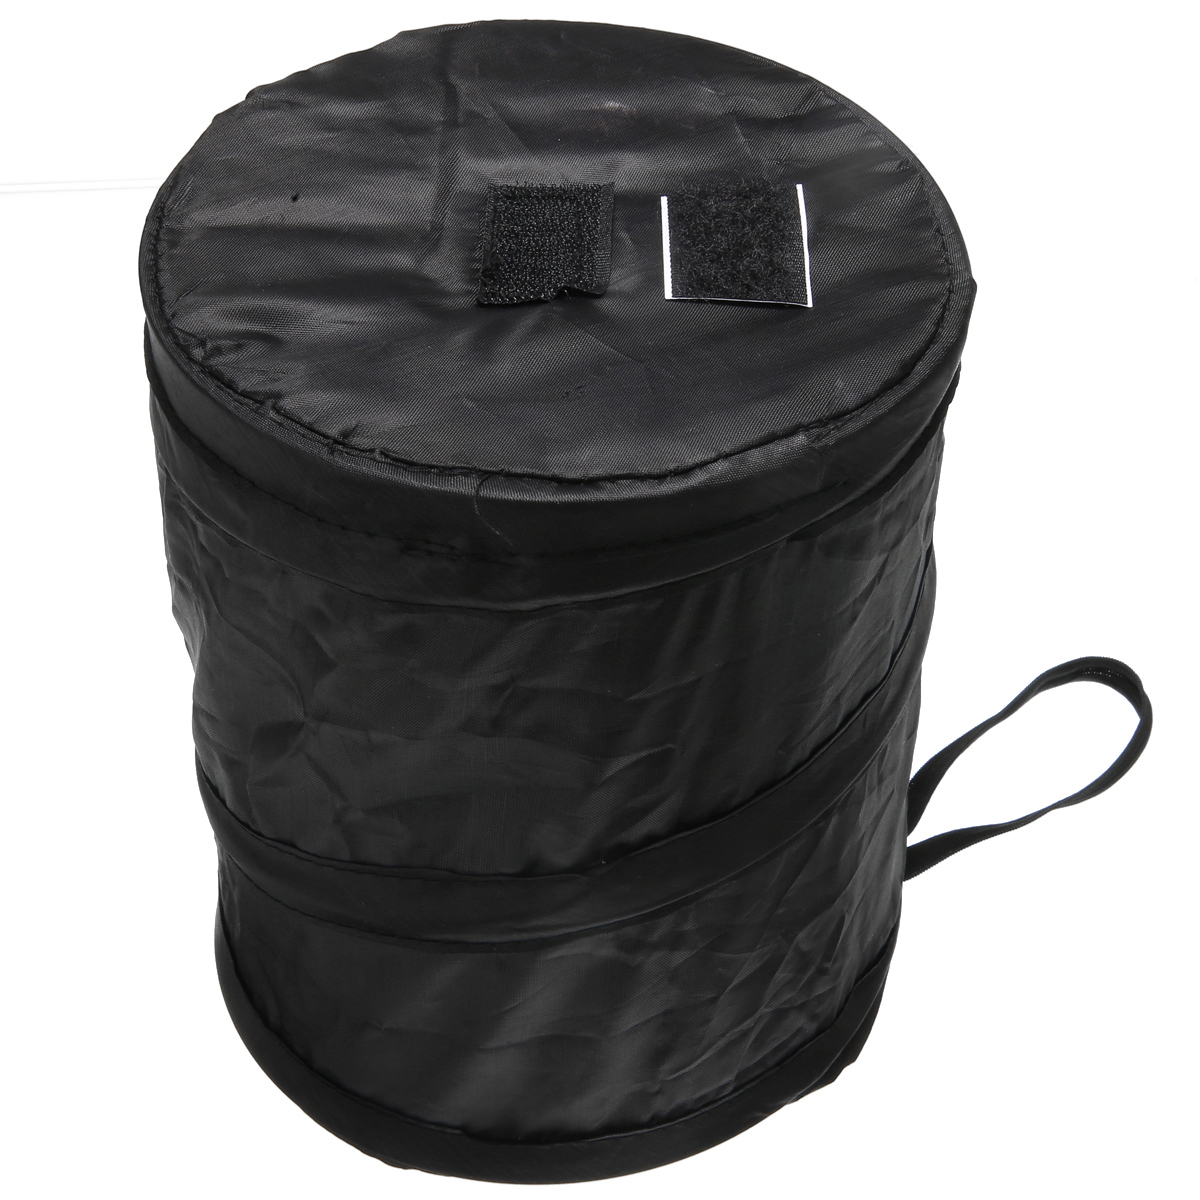 Foldable Car Auto RV Trash Bags Wastebasket Can Litter Container Garbage Bin New